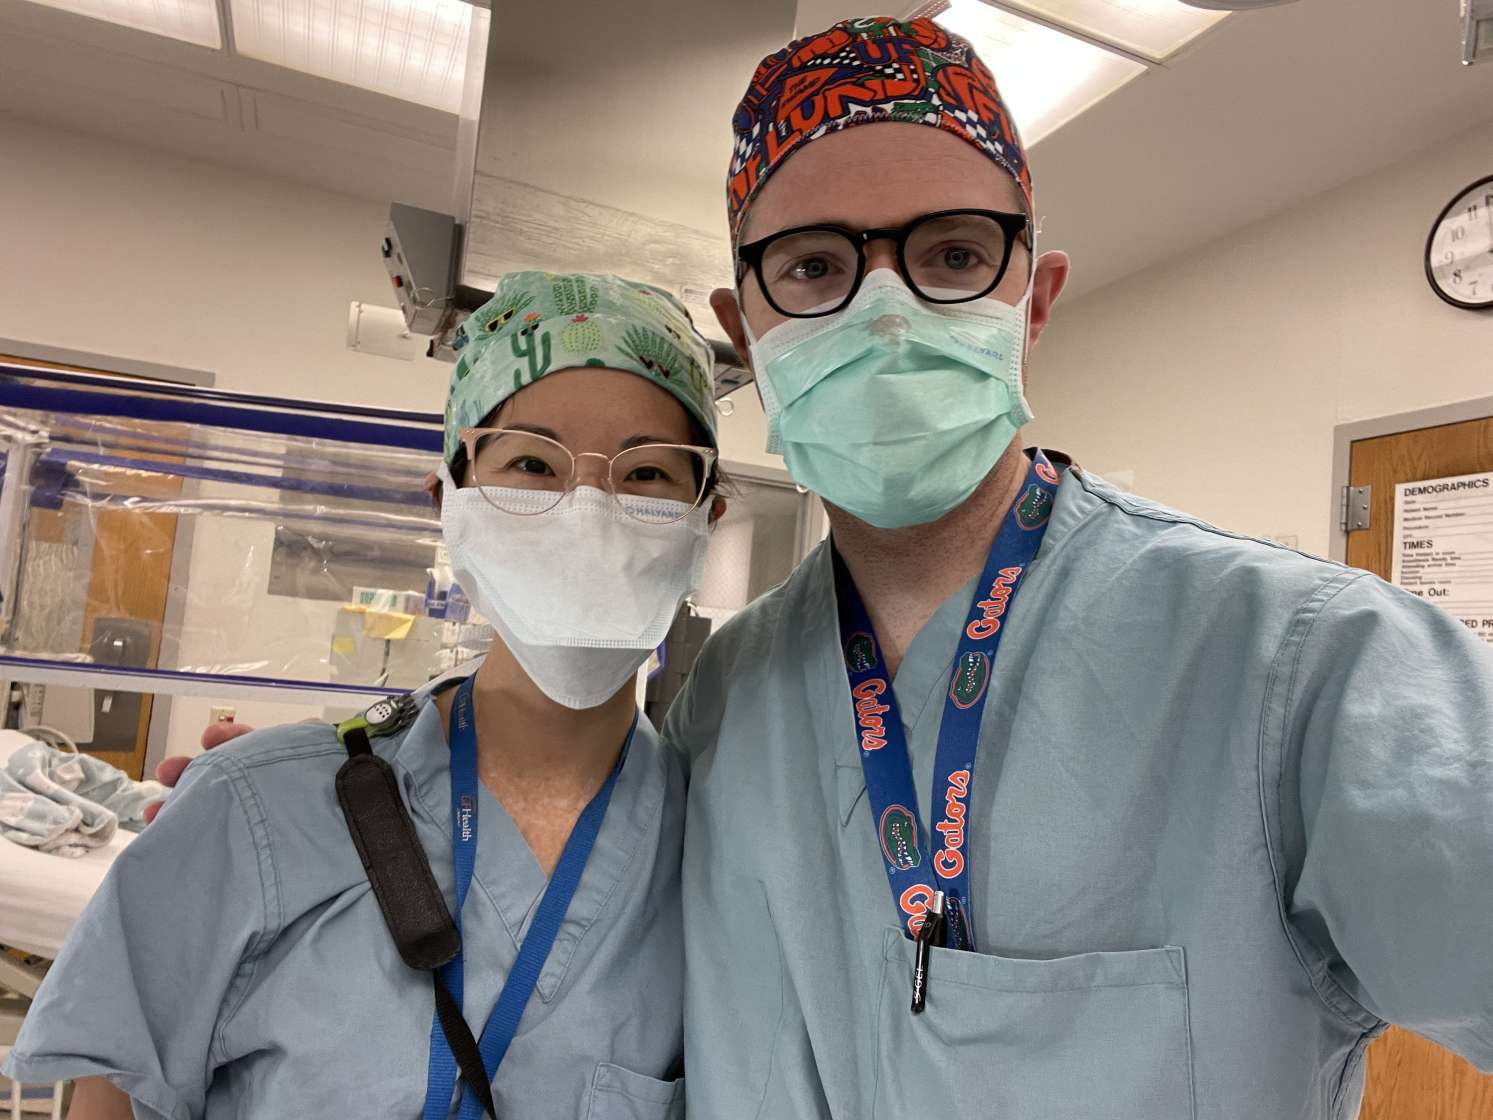 doctors kuo and bayne. both dressed in scrubs, scrub hats and masks. they are in the practice lab.